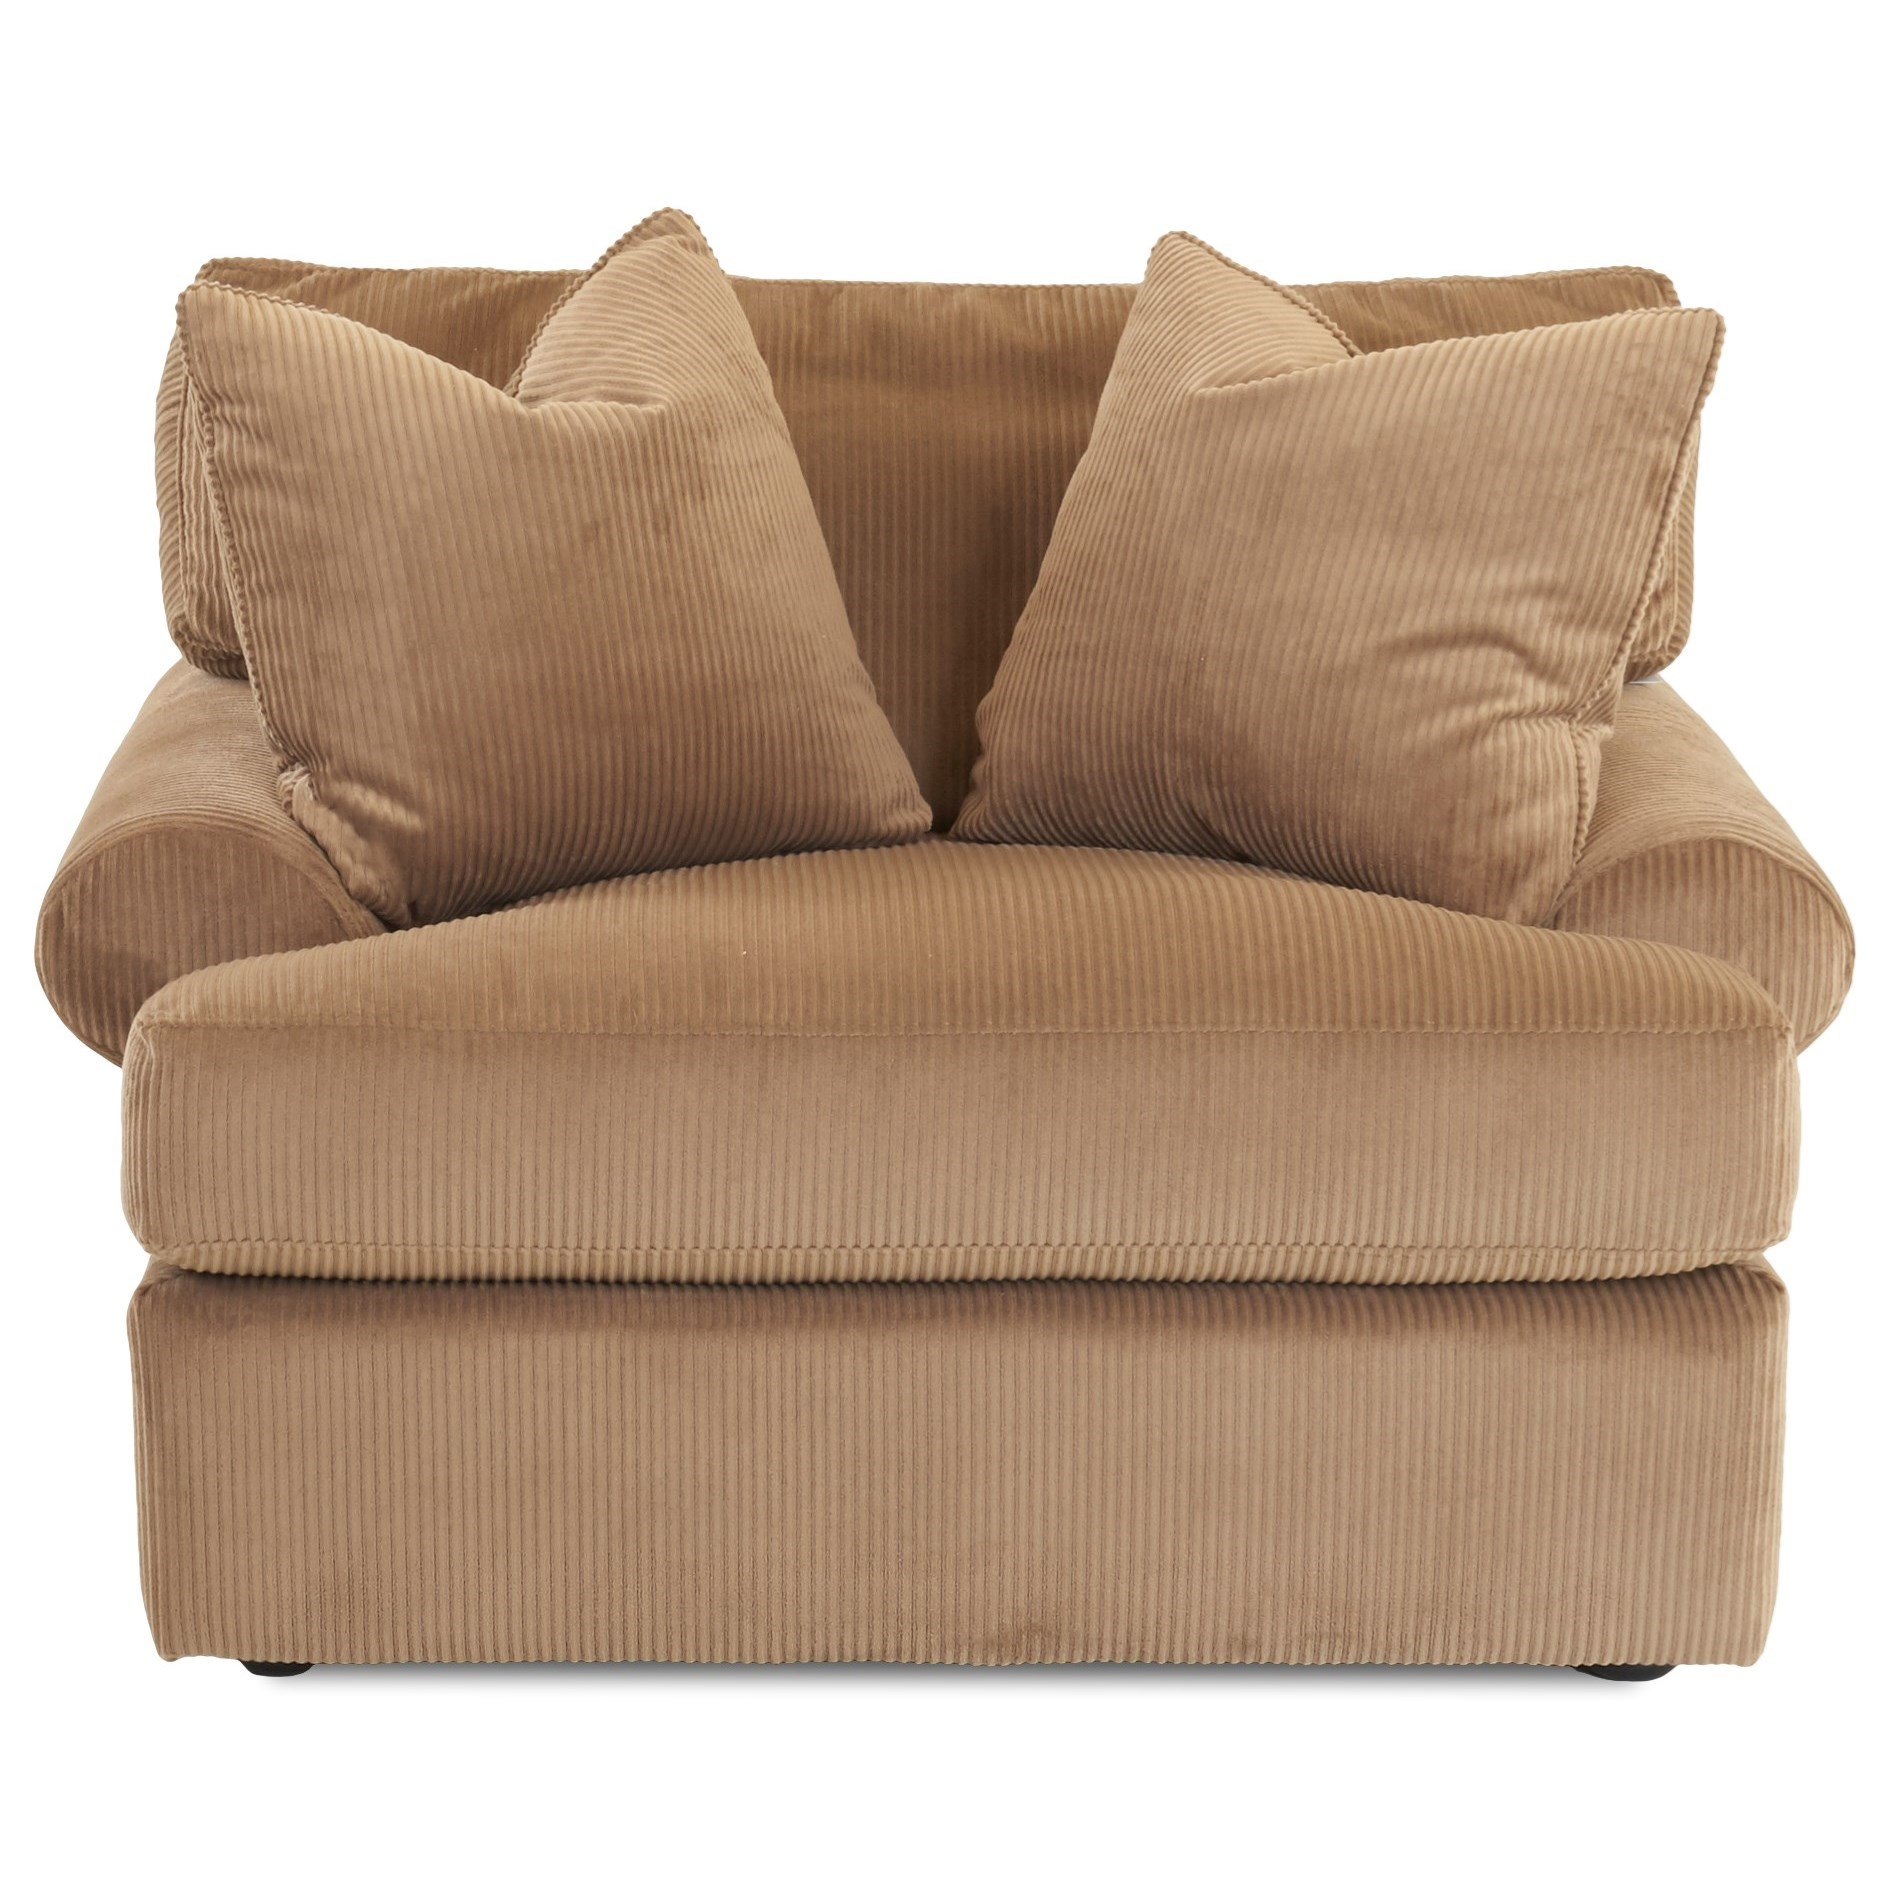 Casual Oversized Chair with 2 Pillows